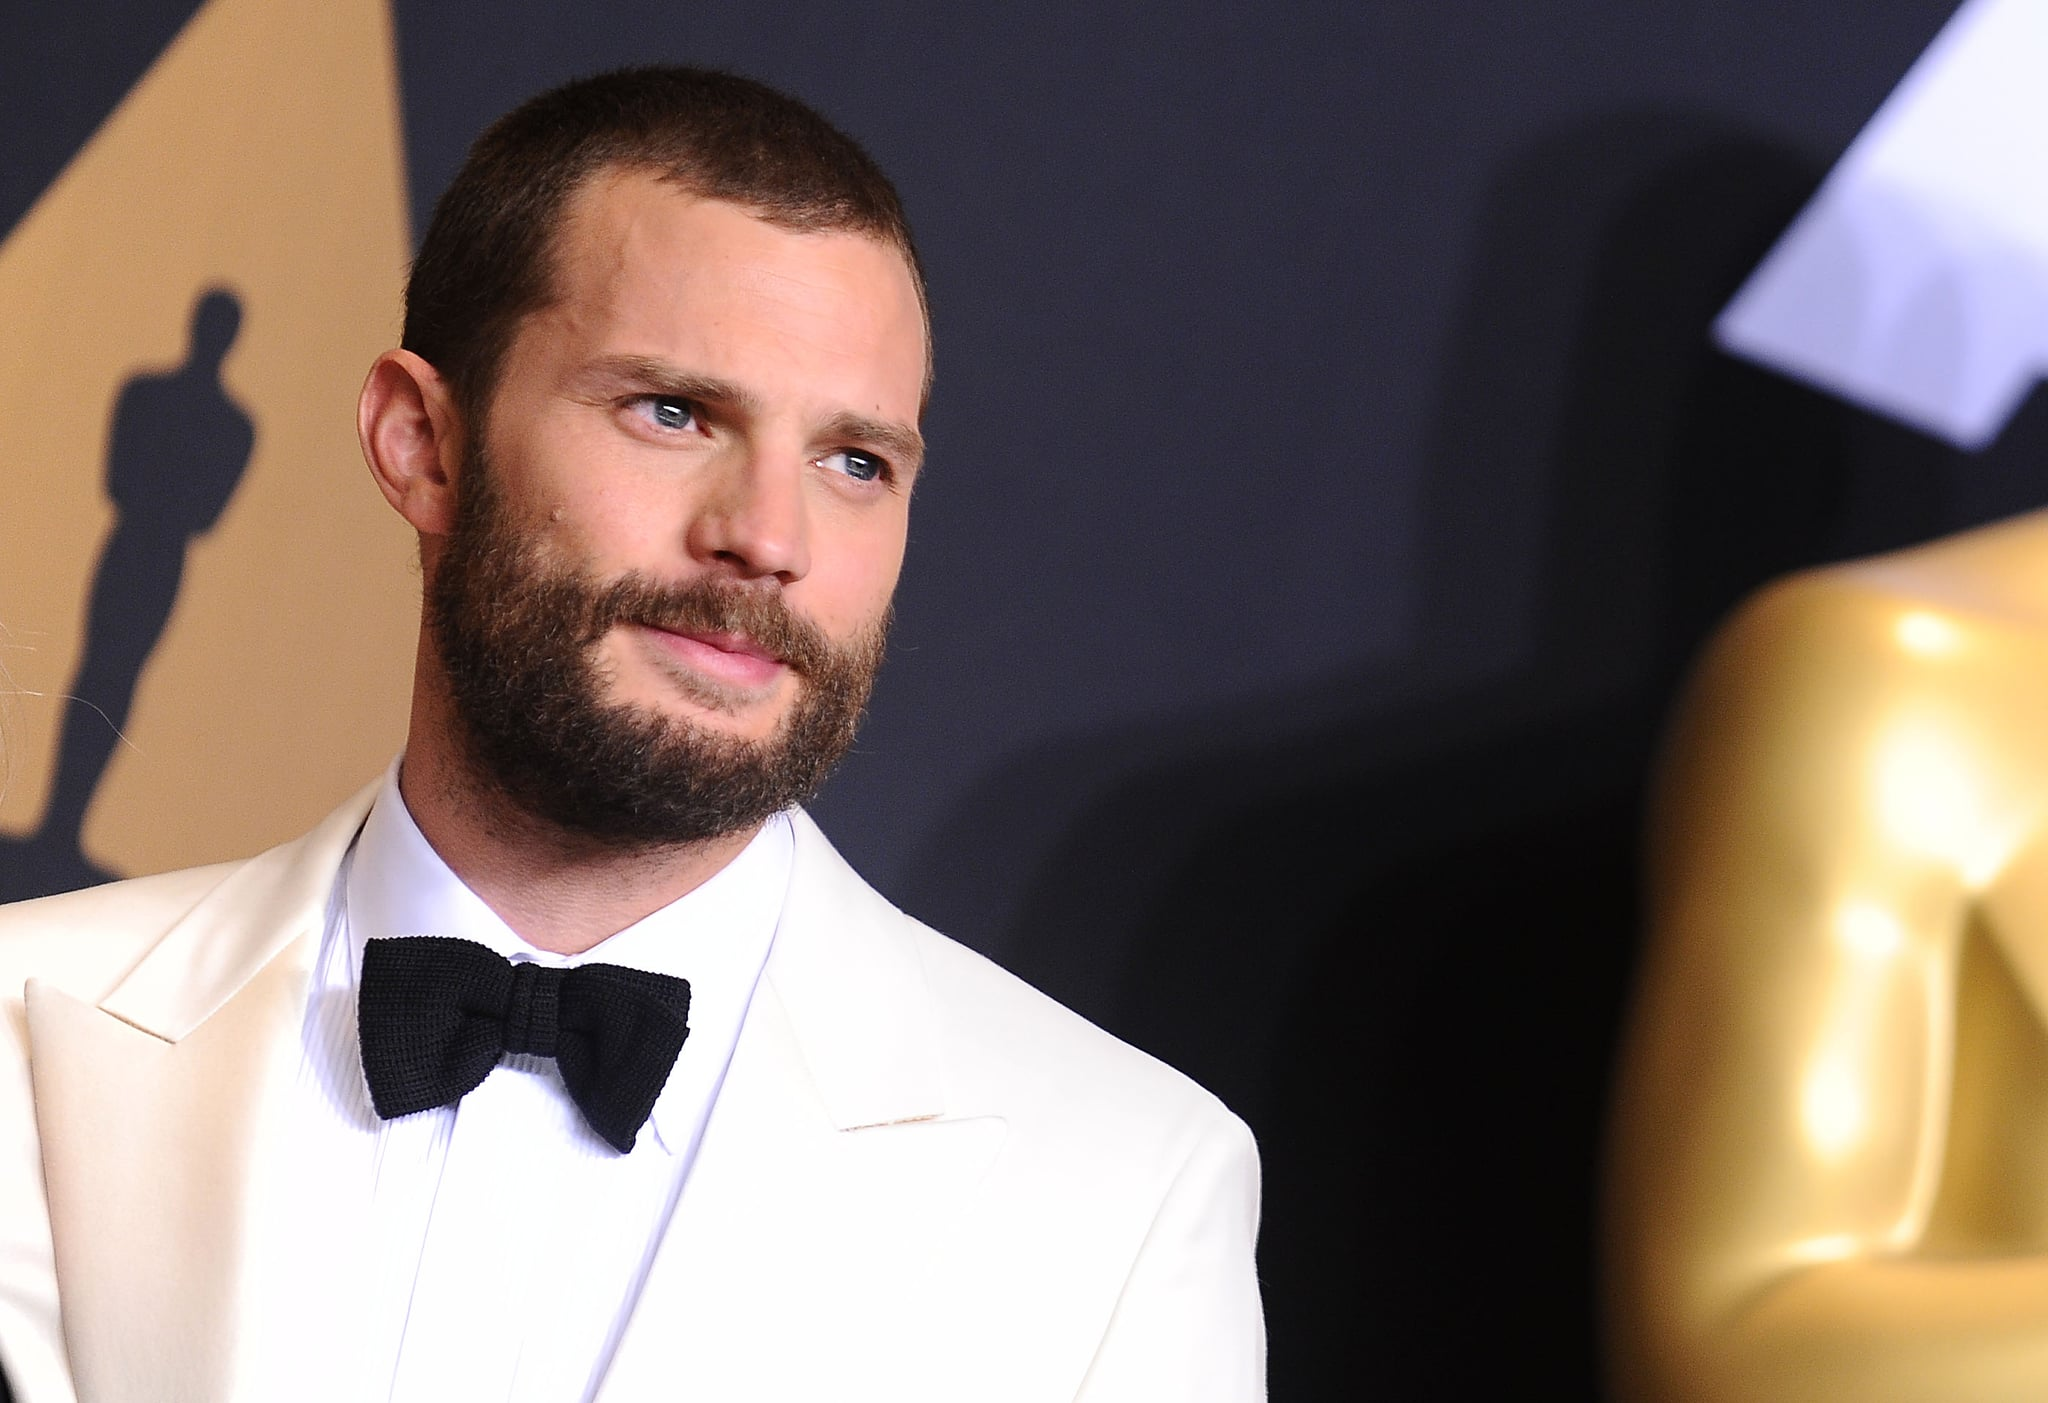 HOLLYWOOD, CA - FEBRUARY 26:  Actor Jamie Dornan poses in the press room at the 89th annual Academy Awards at Hollywood & Highland Center on February 26, 2017 in Hollywood, California.  (Photo by Jason LaVeris/FilmMagic)